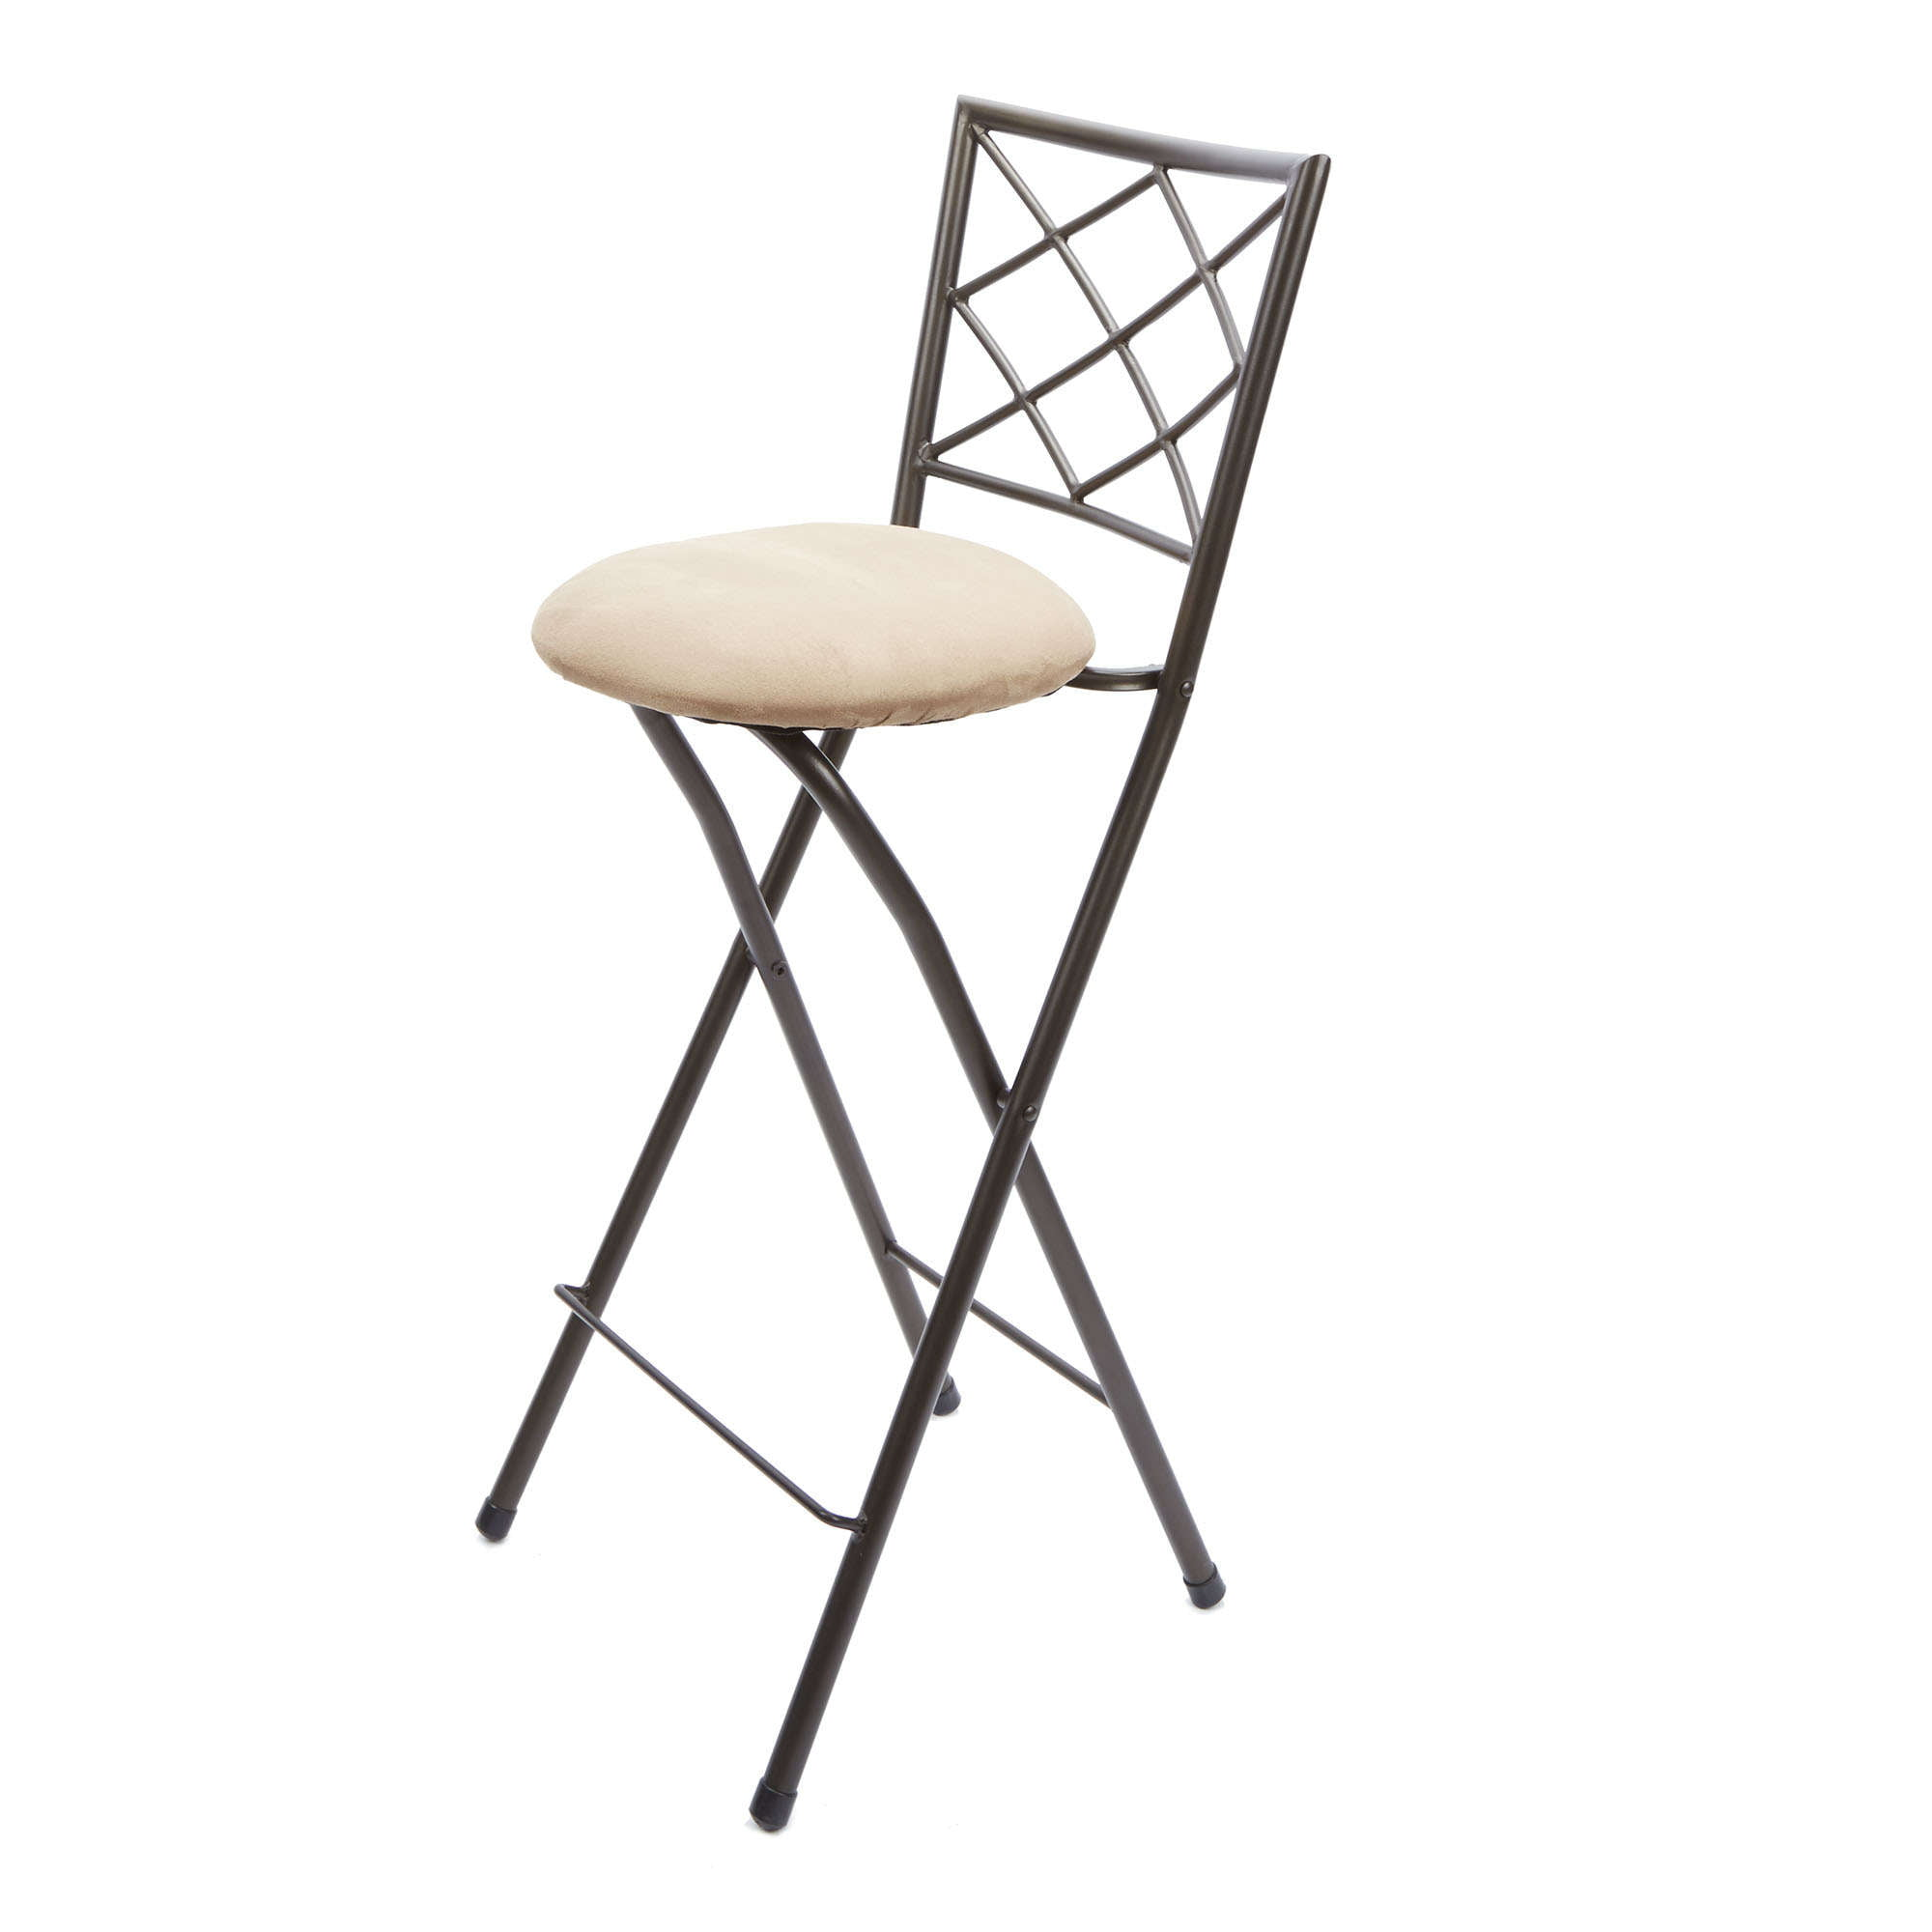 Magnificent Diamond X Back Folding 30 Inch Bar Height Stool Bronze Finish Multiple Colors Walmart Com Unemploymentrelief Wooden Chair Designs For Living Room Unemploymentrelieforg